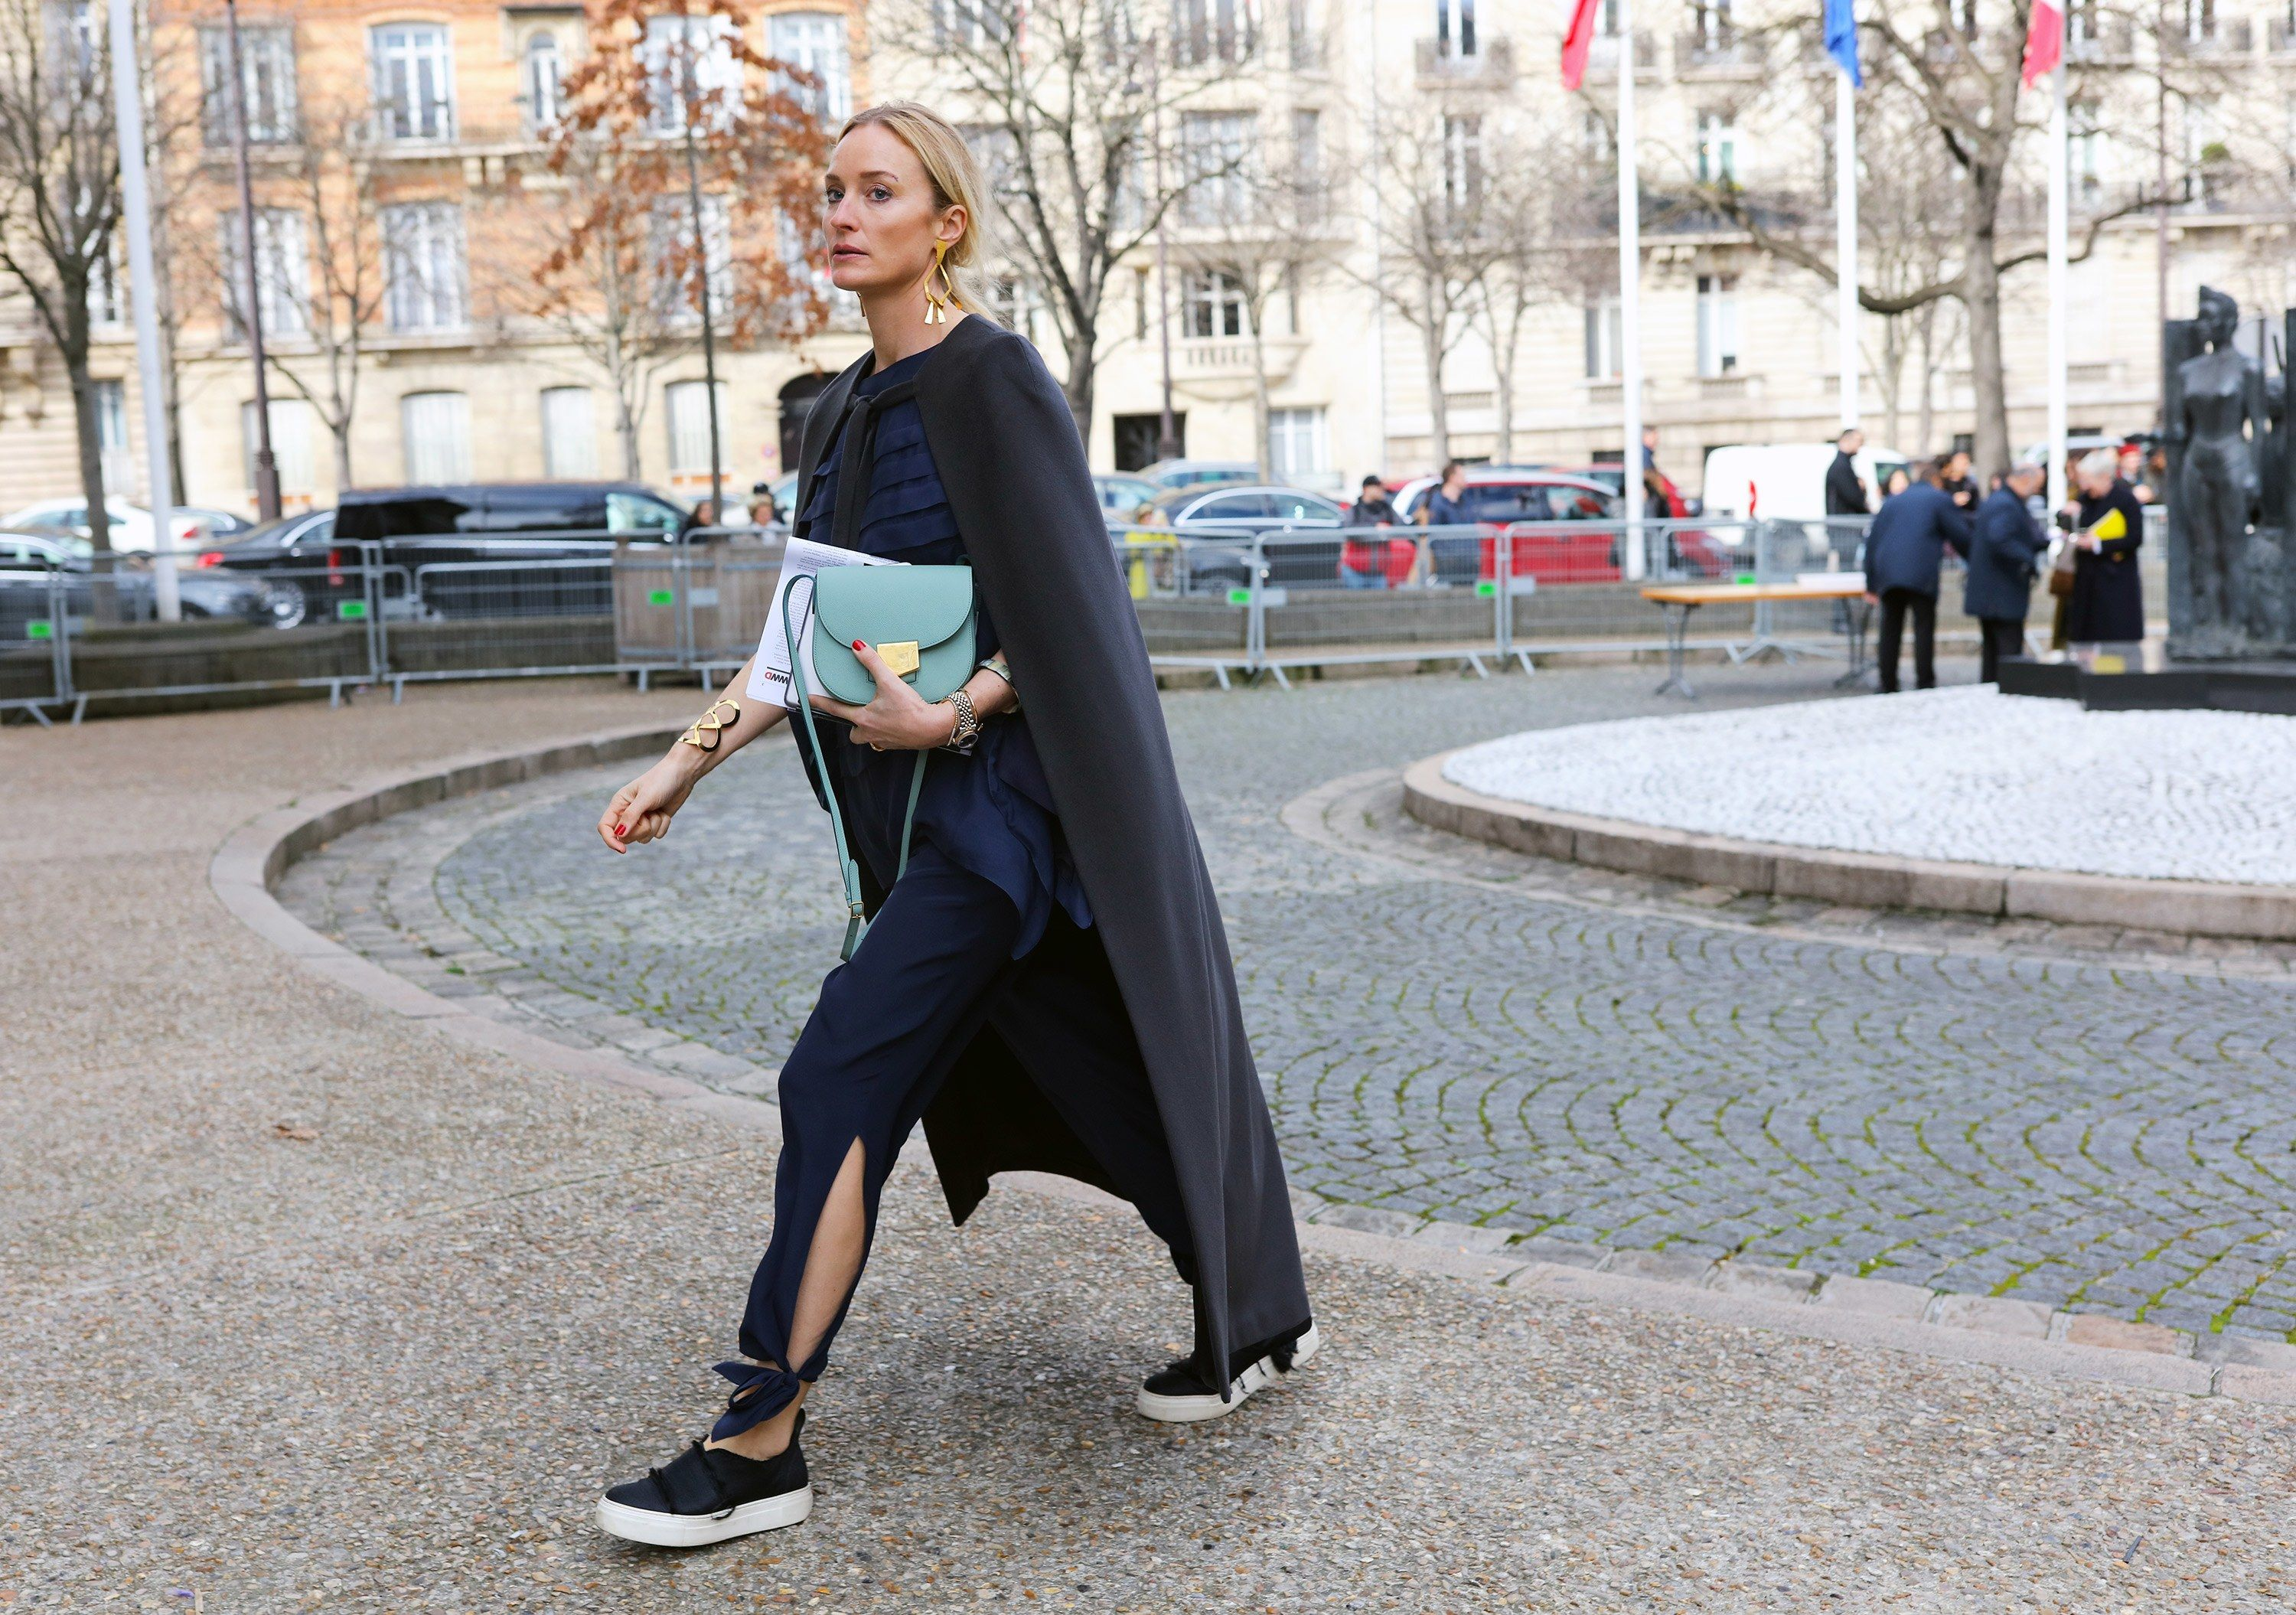 Phil Oh Shoots The Best Of Paris Street Style Fashion Street